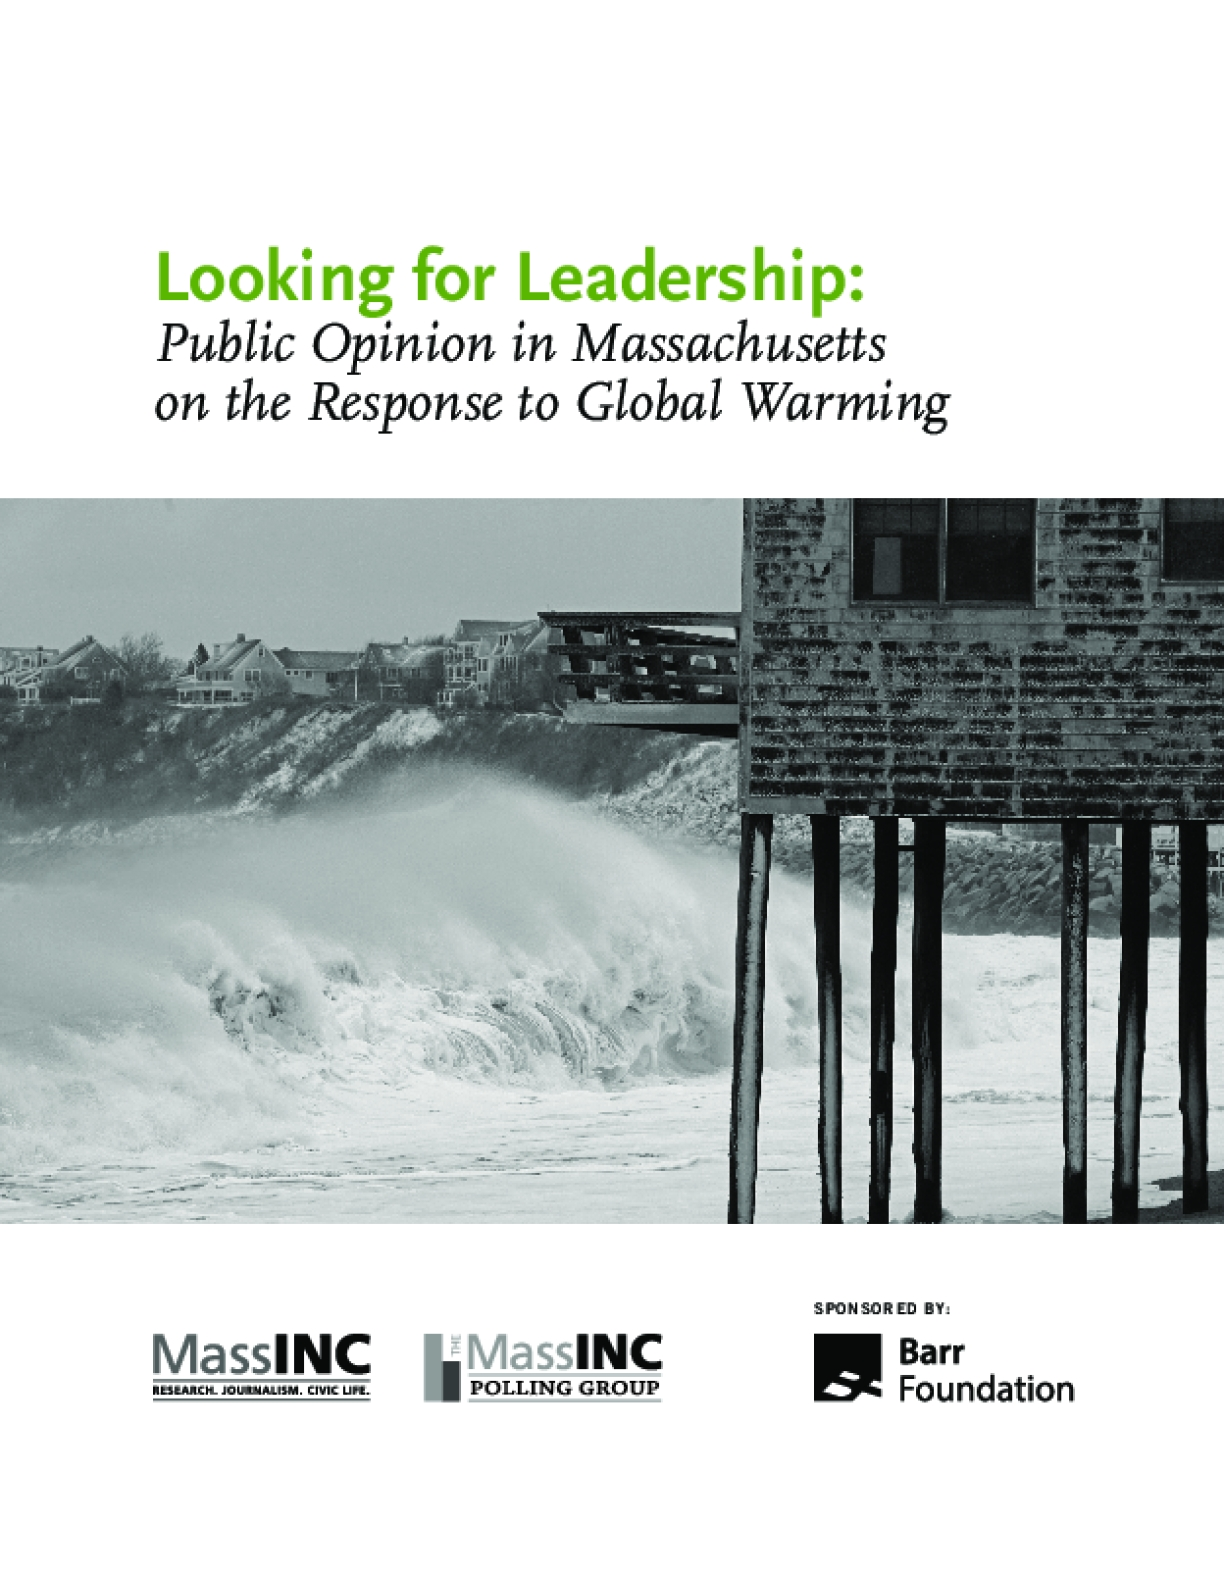 Looking for Leadership: Public Opinion in Massachusetts on the Response to Global Warming